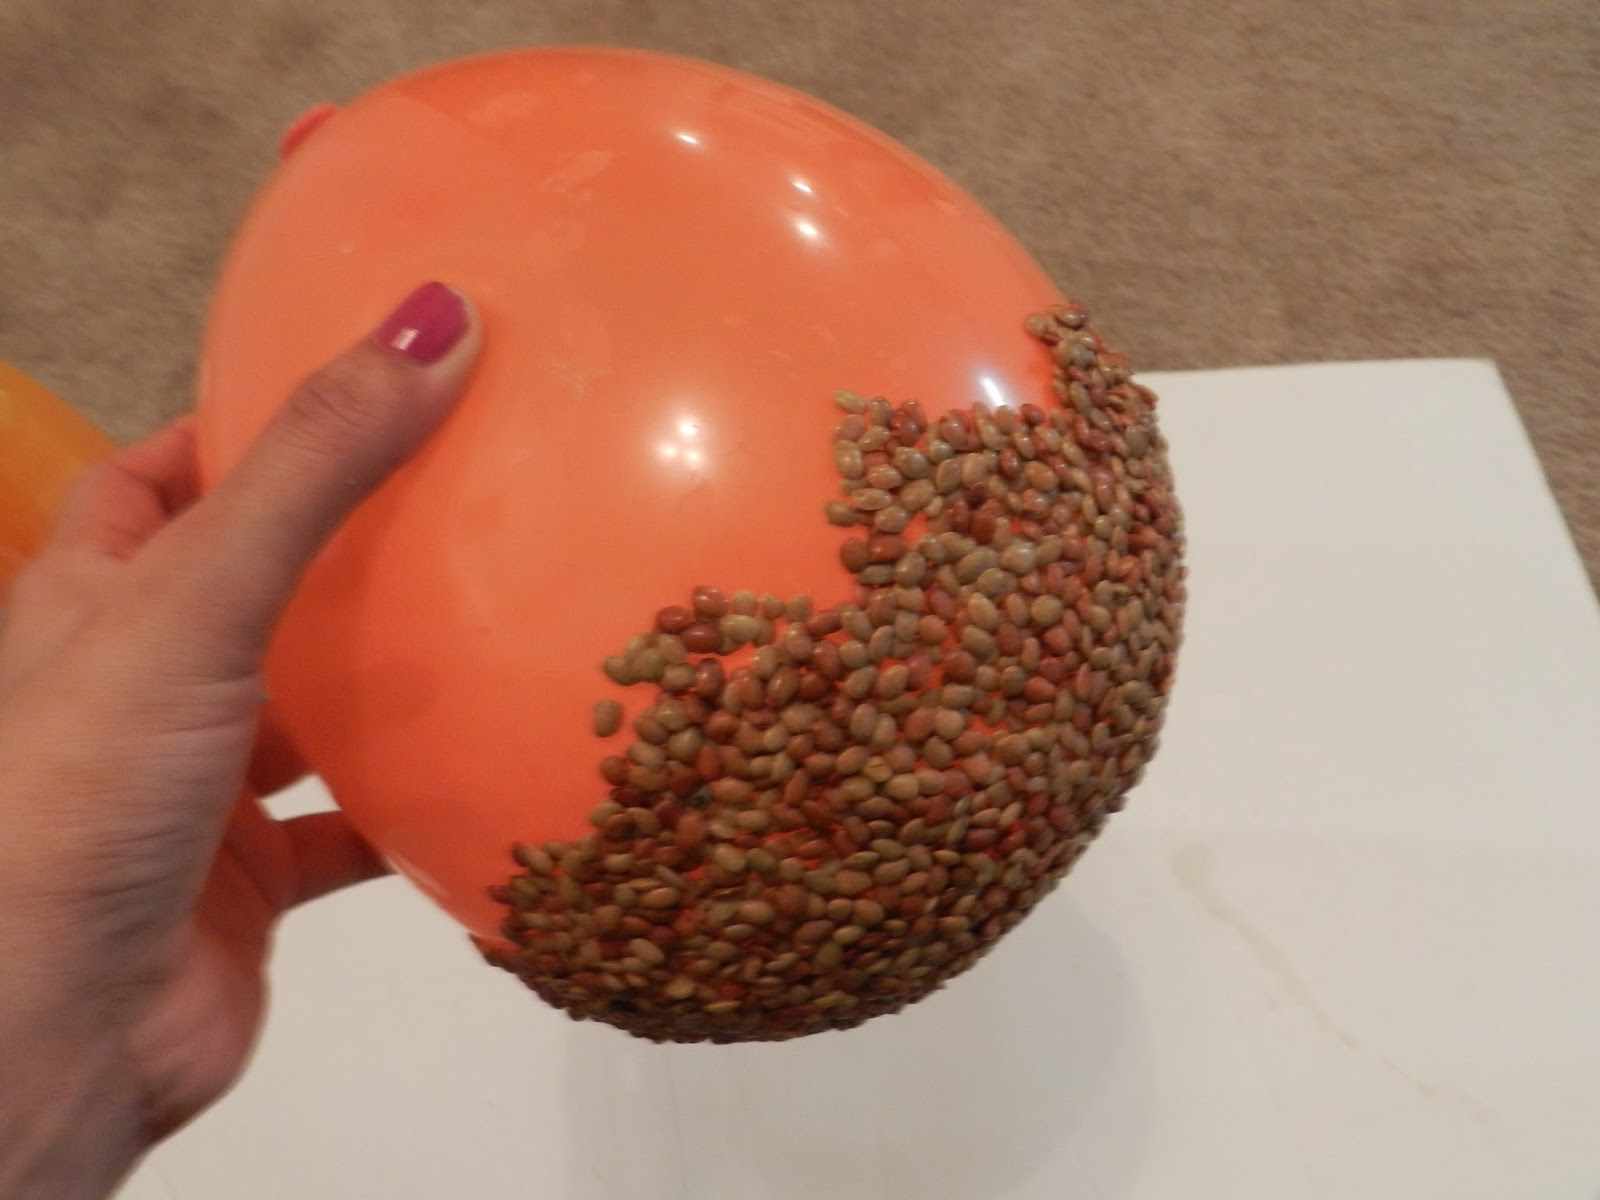 Creative DIY Crafts Balloon Bowl With Gram Dhal